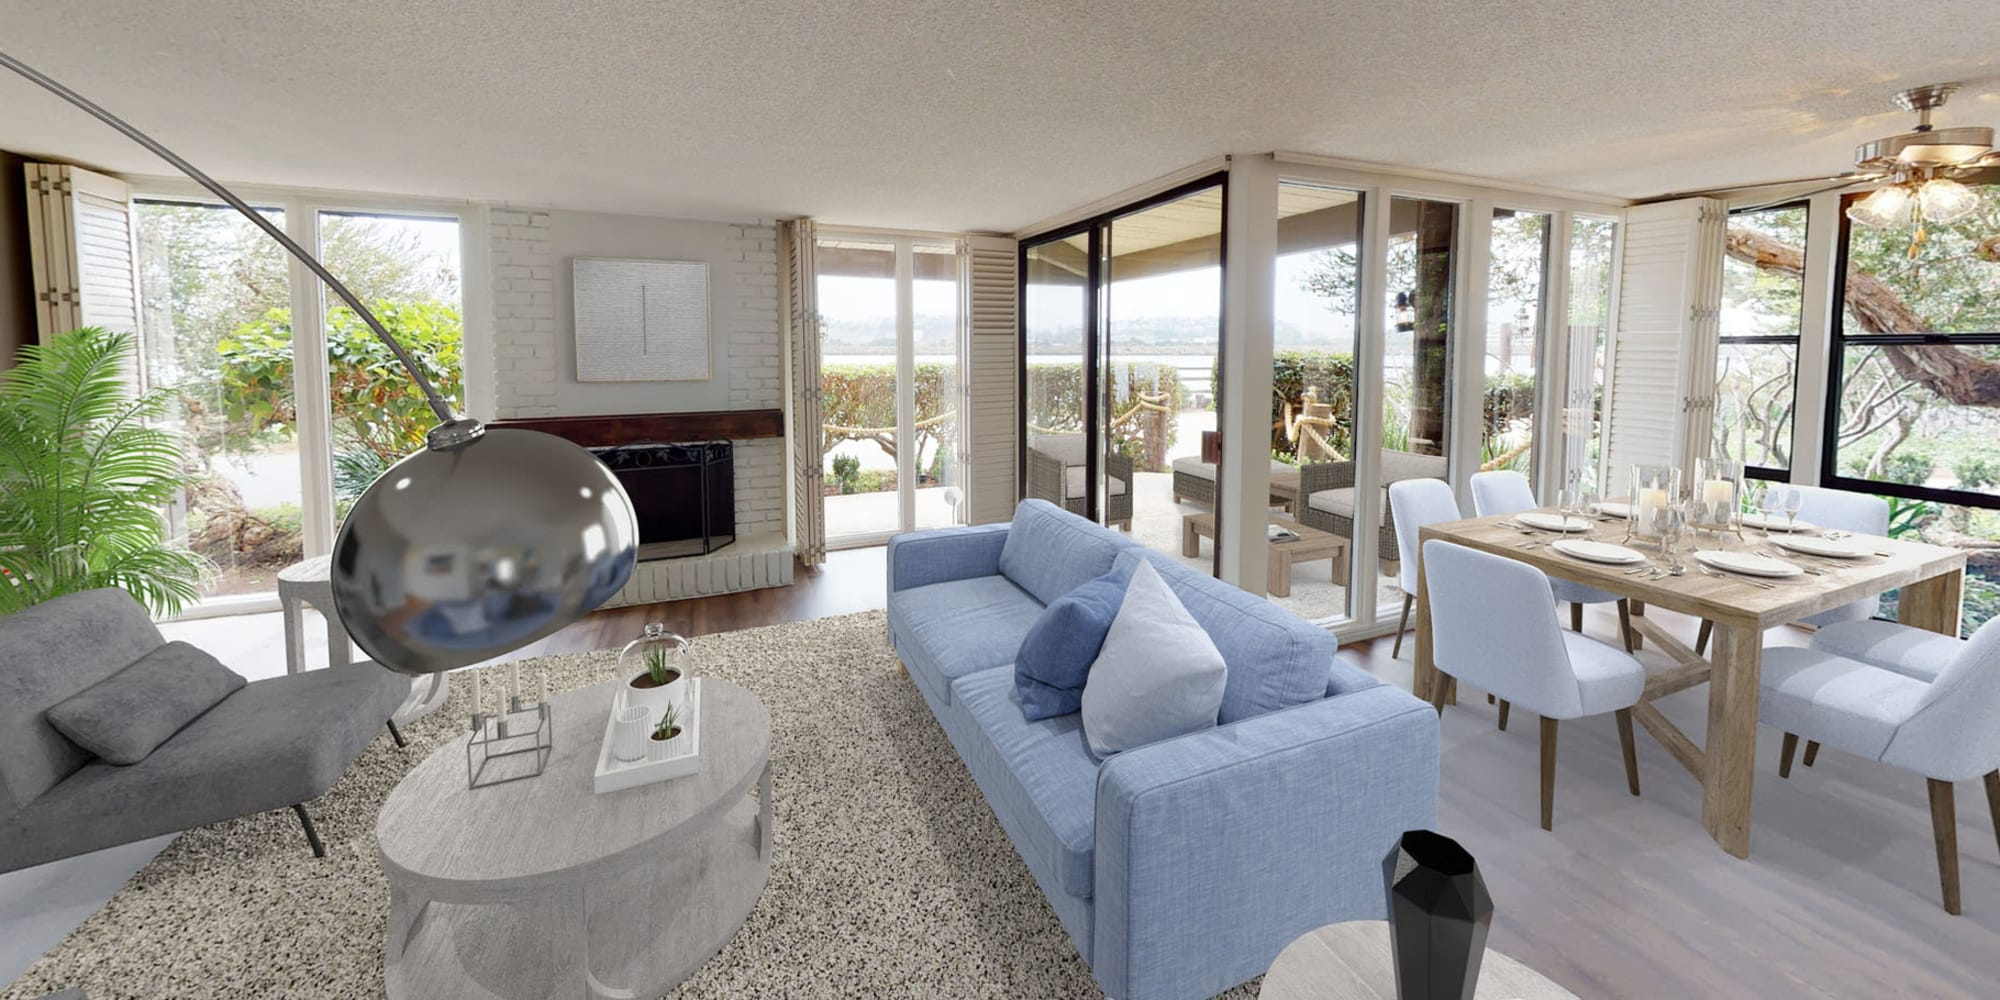 Fireplace and plush carpeting in the living area of a luxury three-bedroom apartment at Mariners Village in Marina del Rey, California